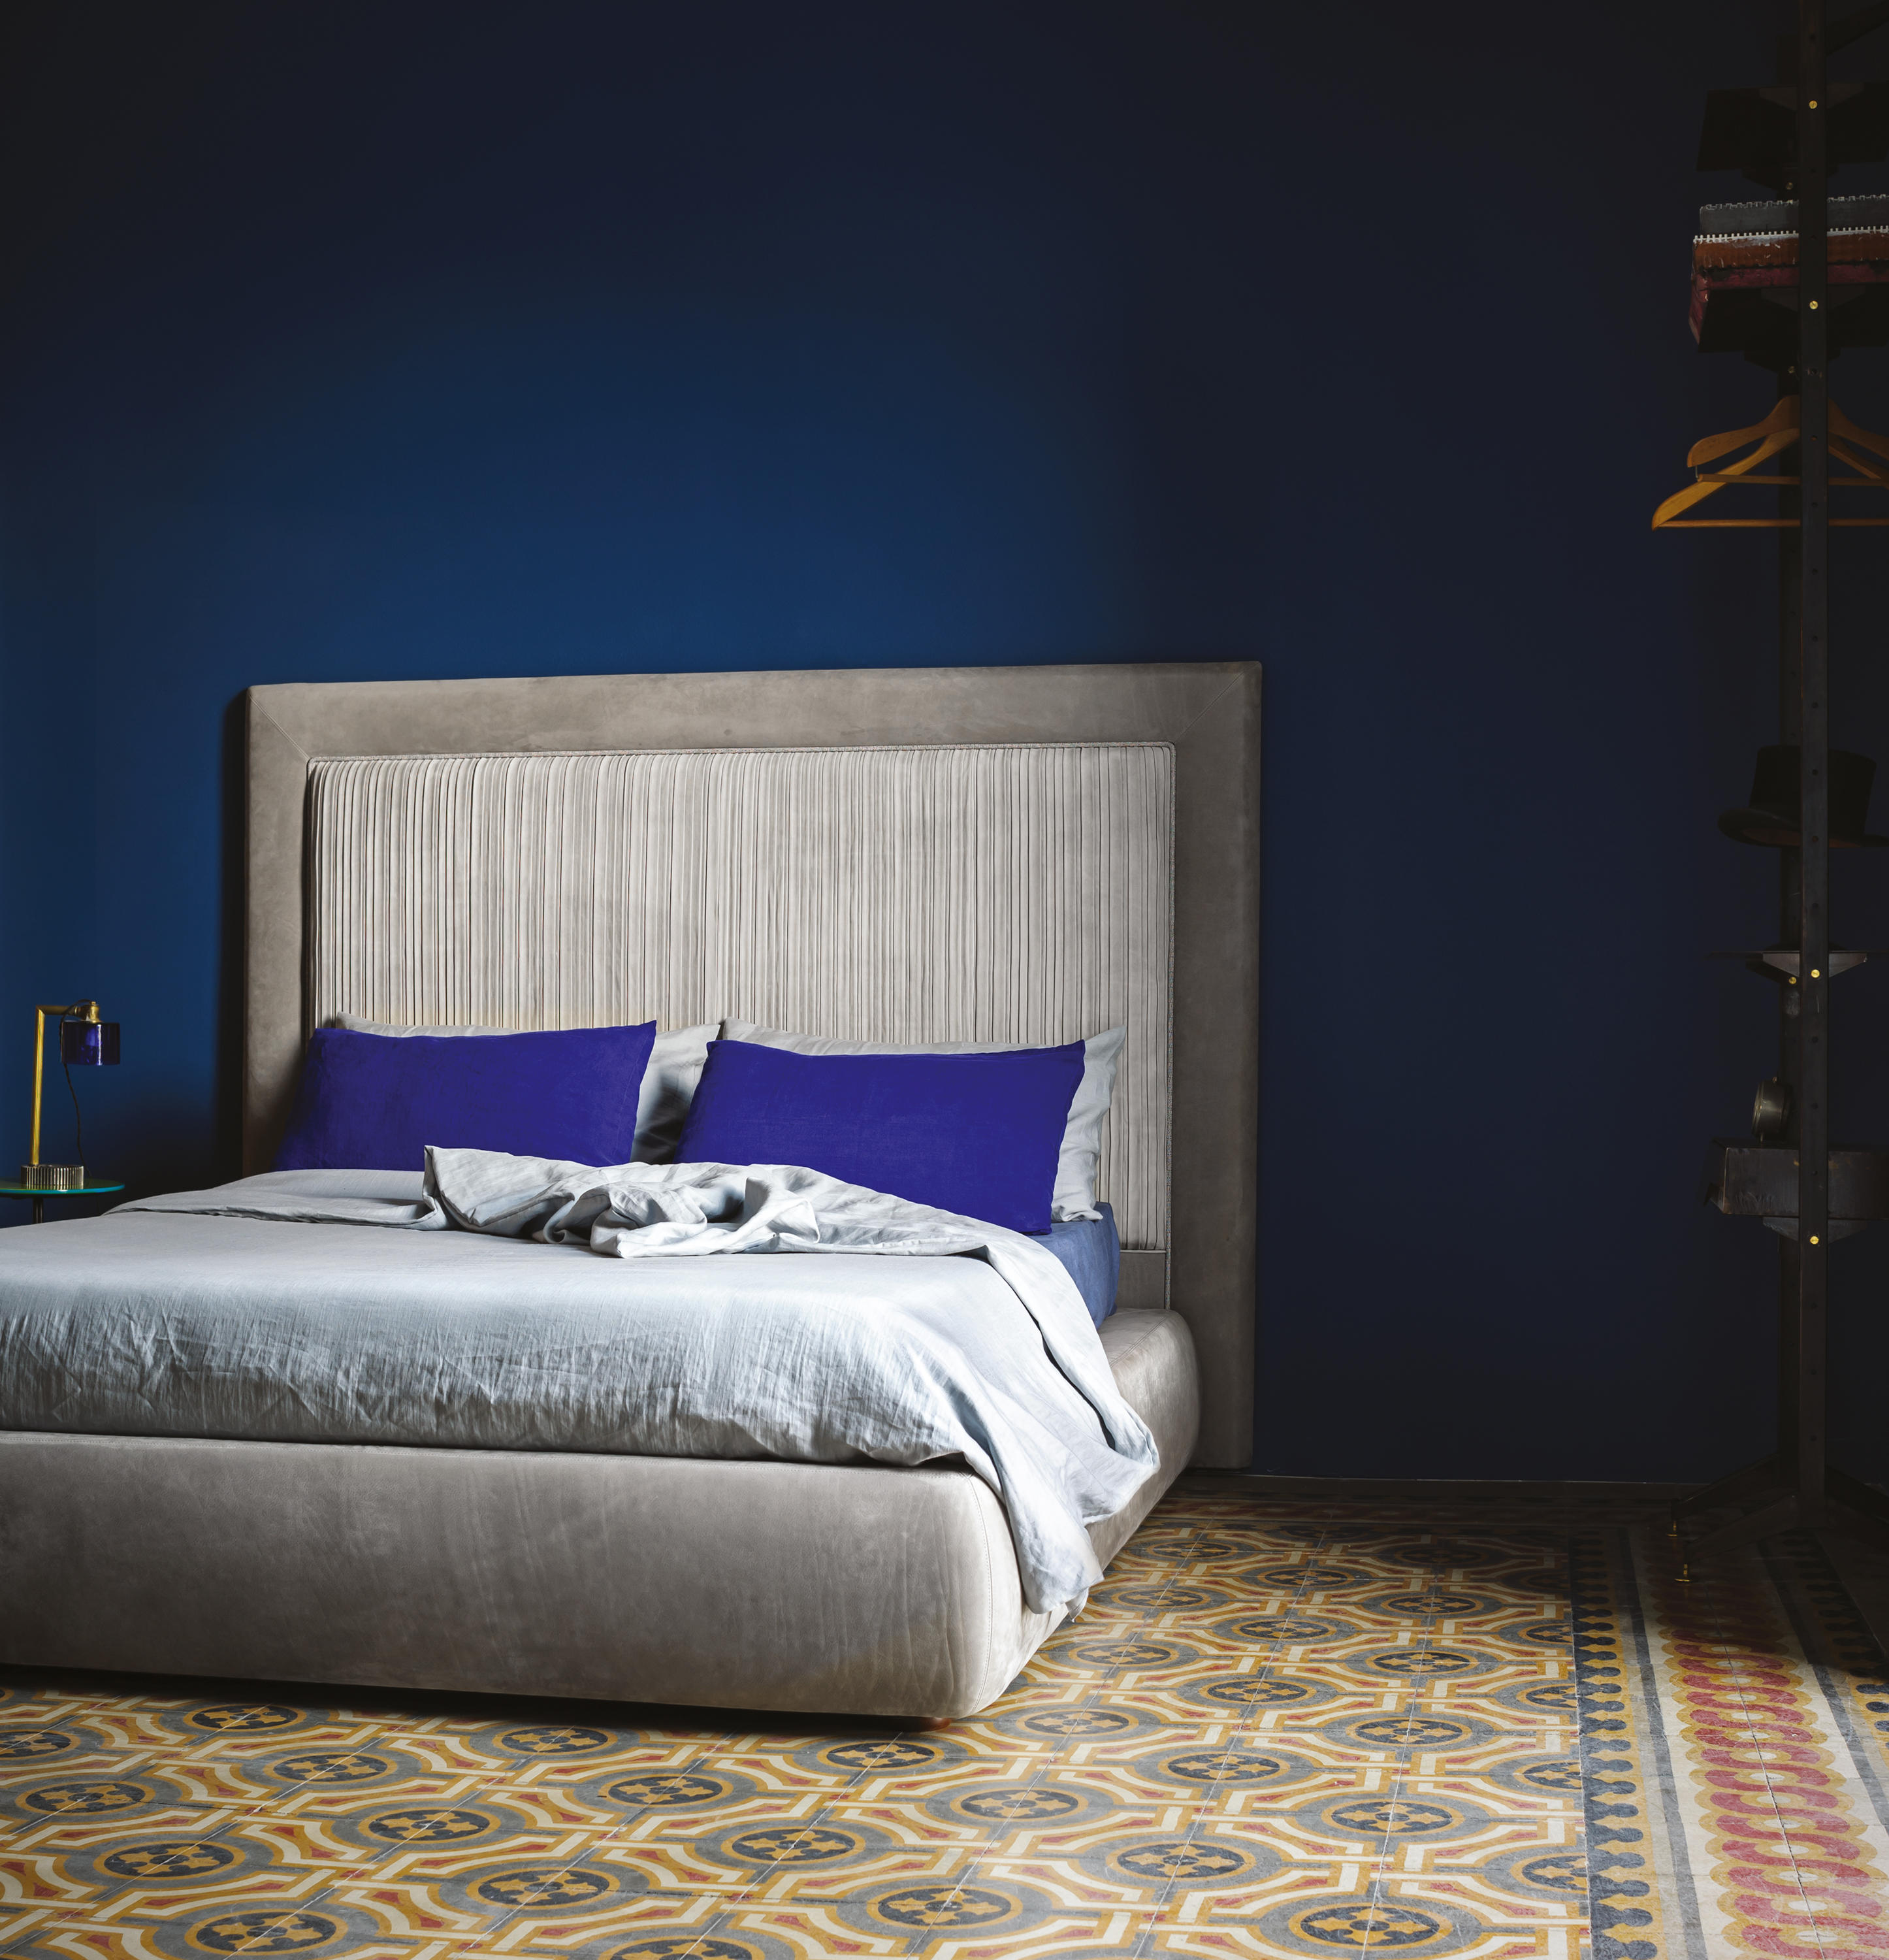 Simons bed double beds from baxter architonic for Baxter letti